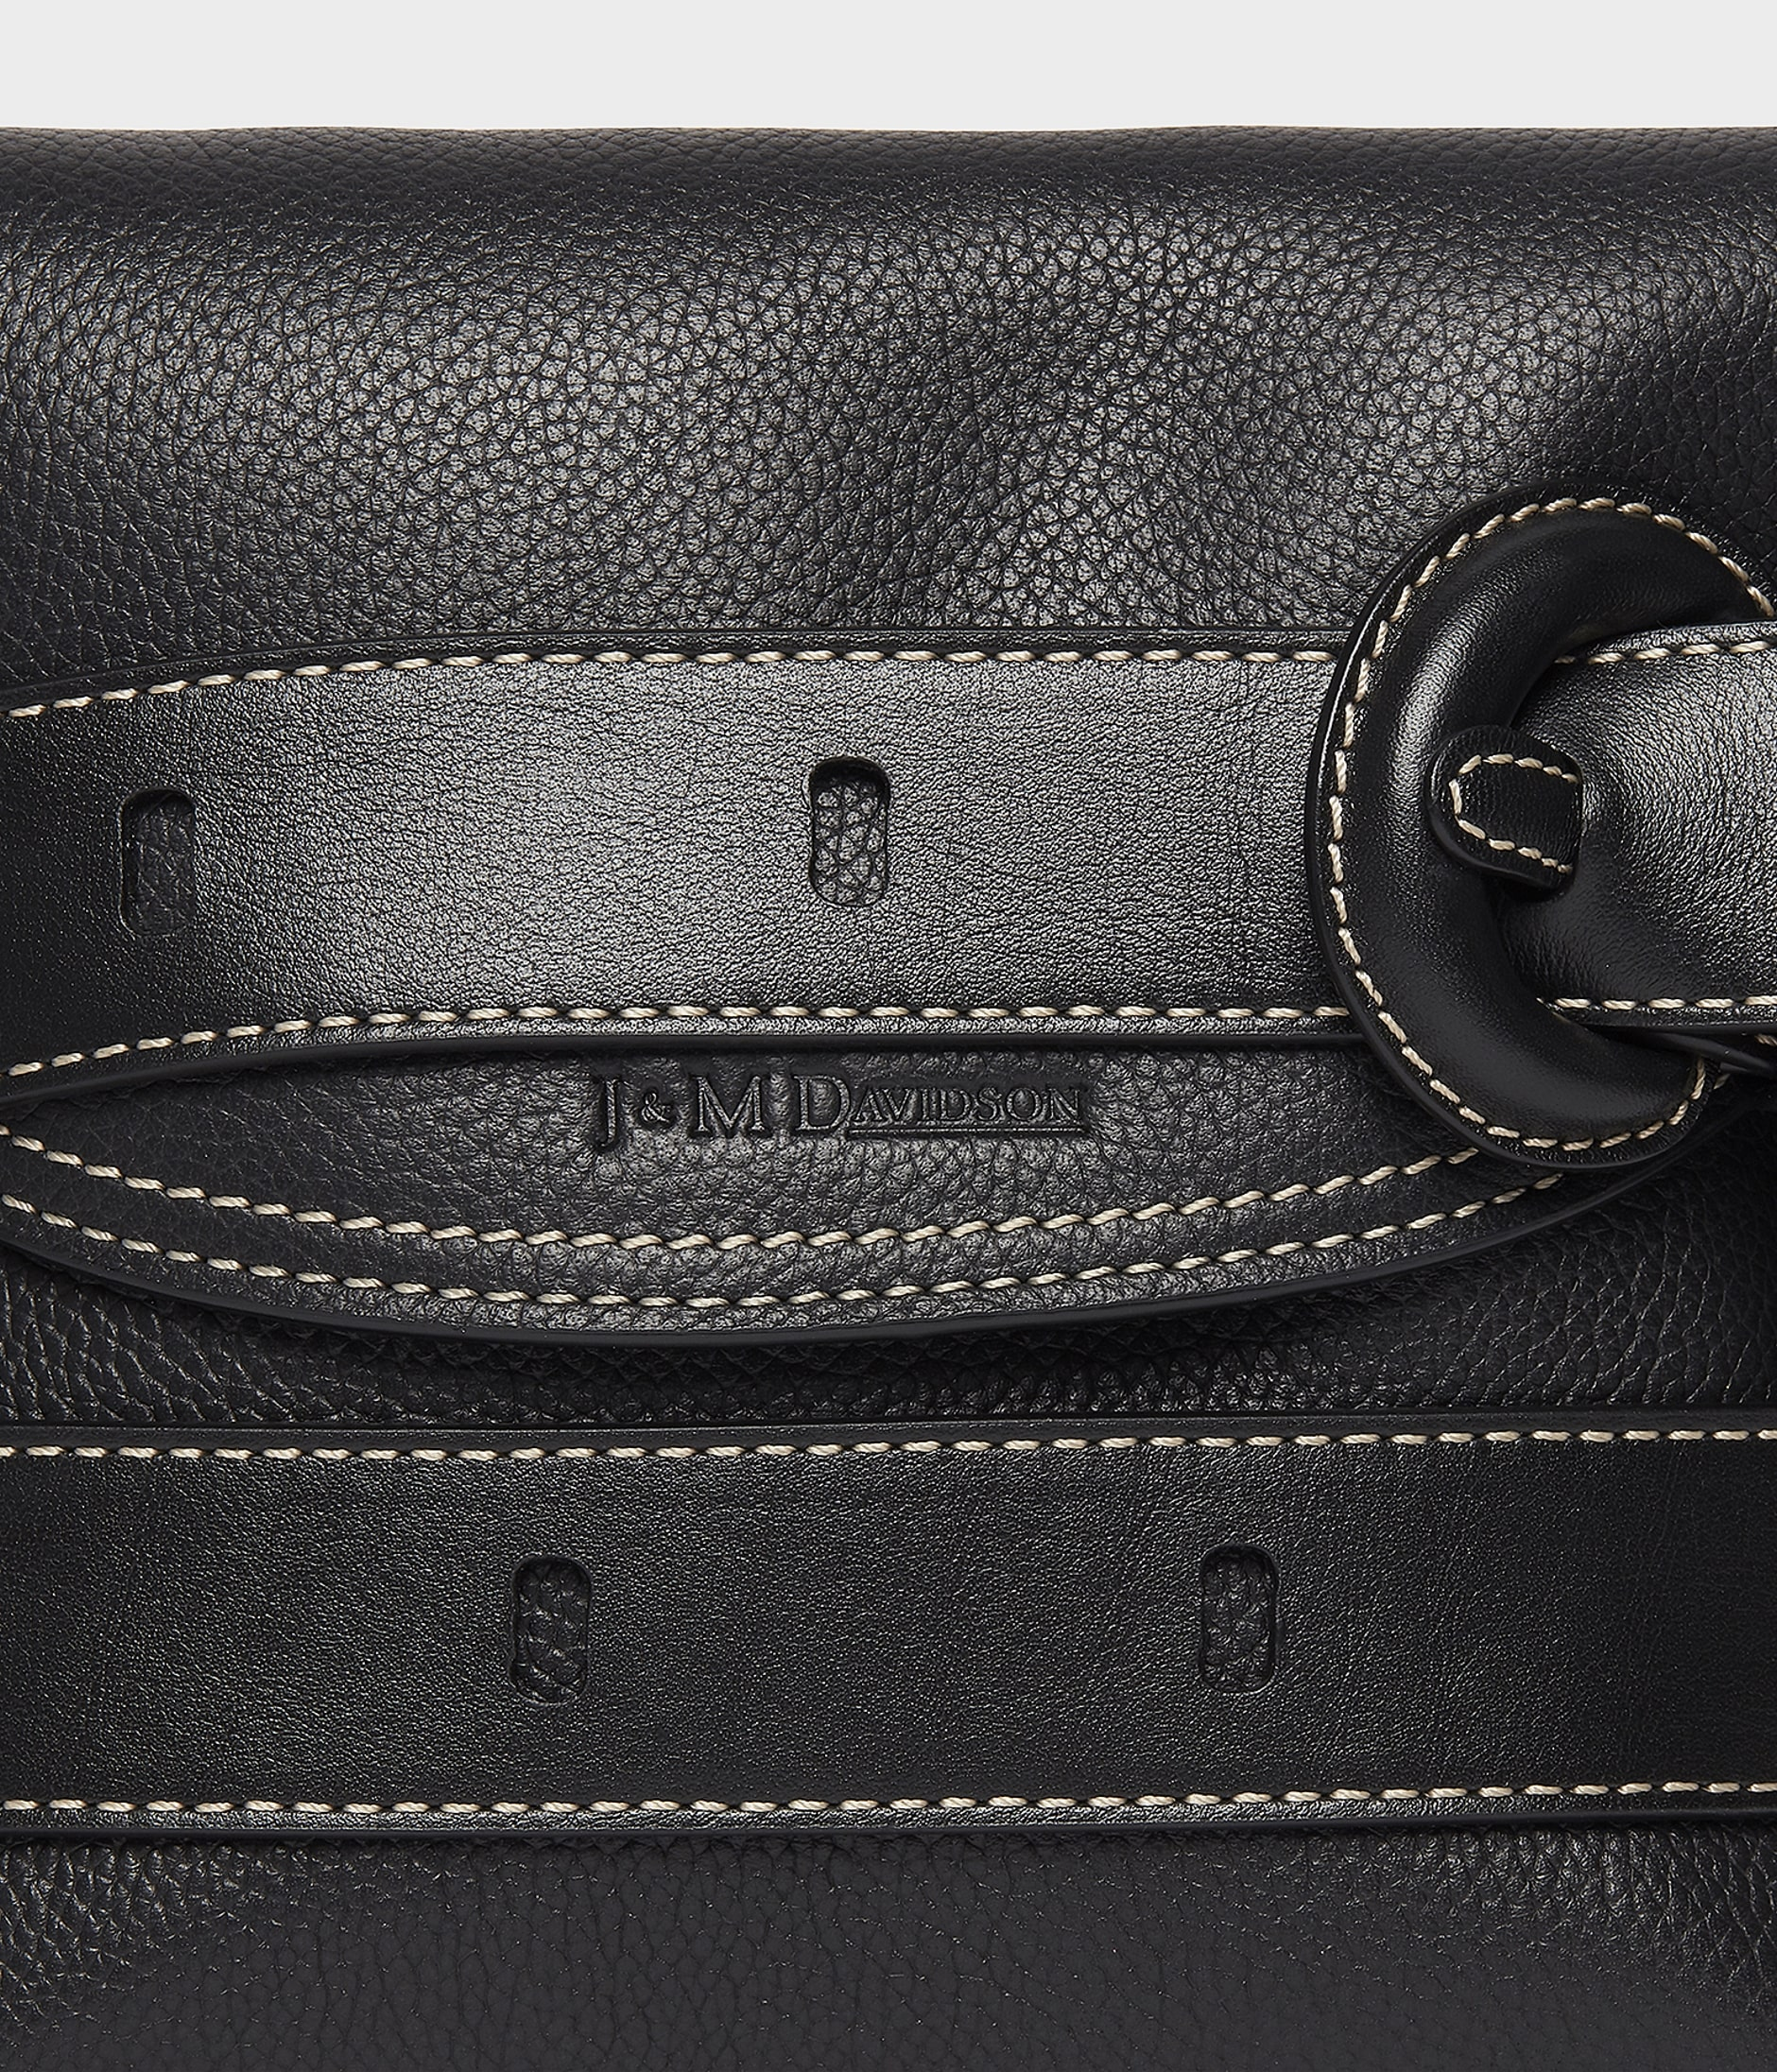 THE BELT POUCH 詳細画像 BLACK 6